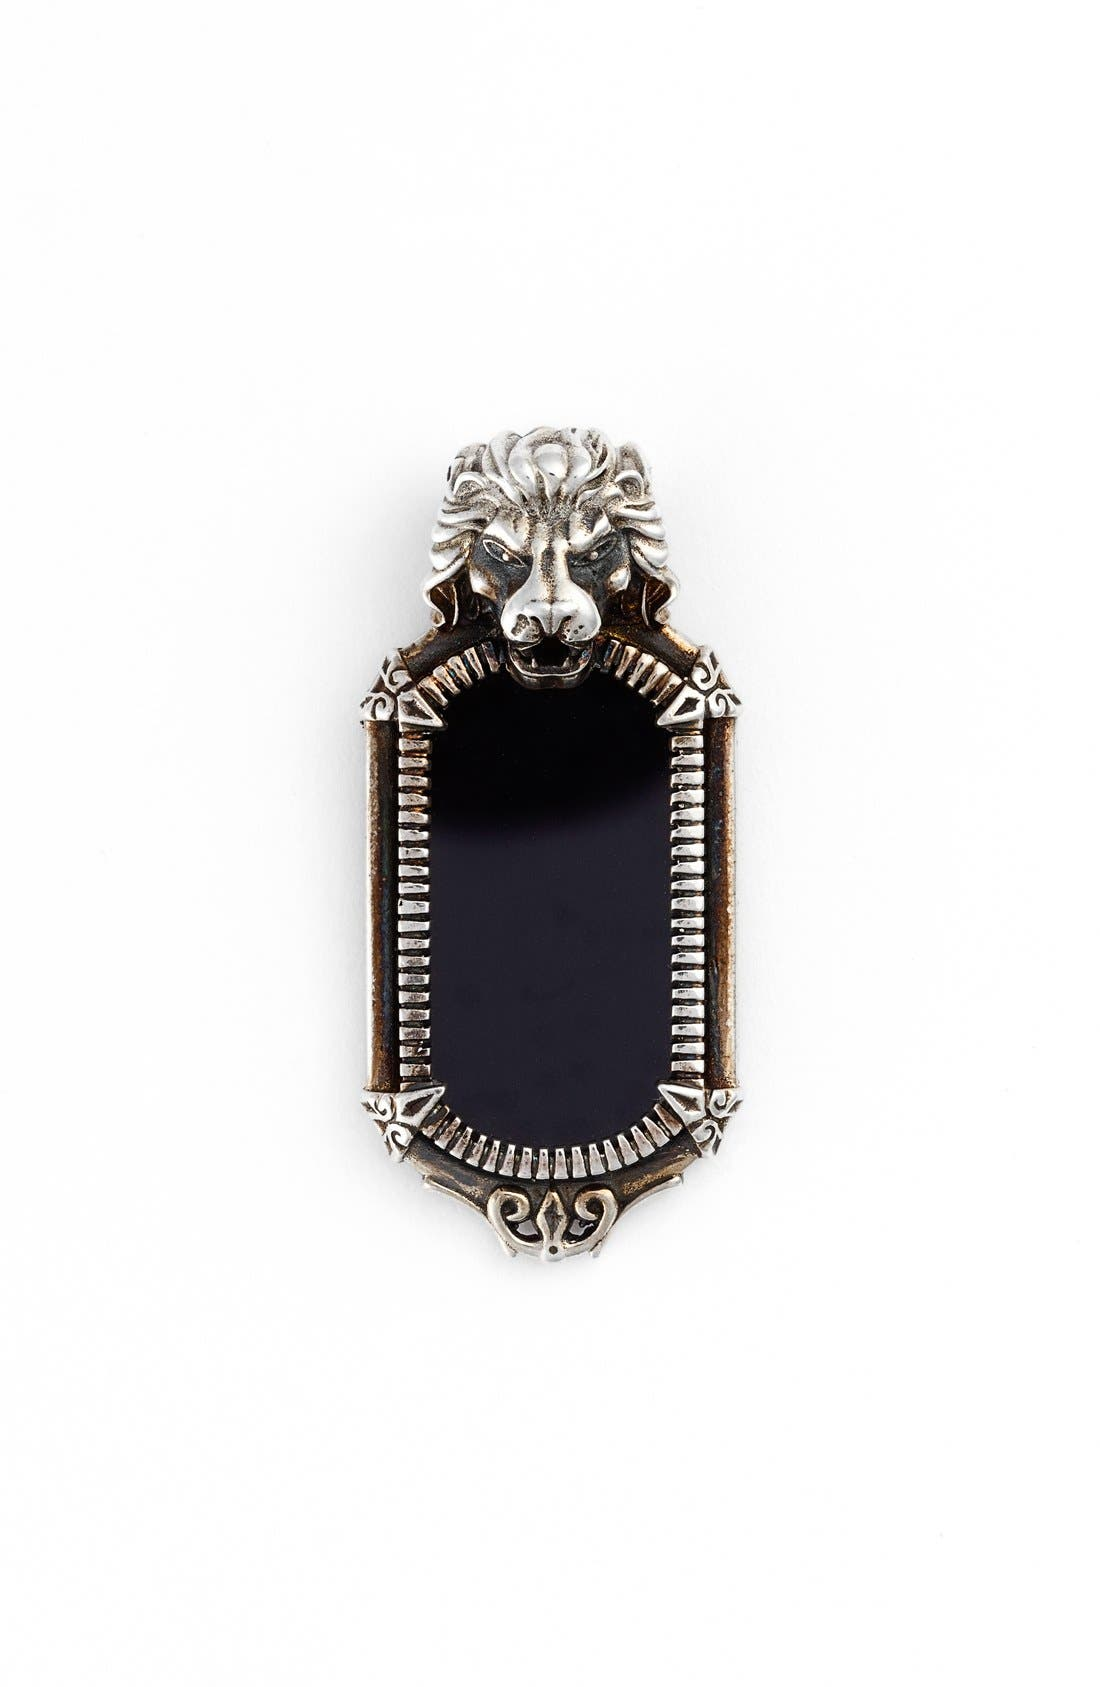 'Minos' Carved Pendant,                             Main thumbnail 1, color,                             SILVER/ BLACK ONYX LION